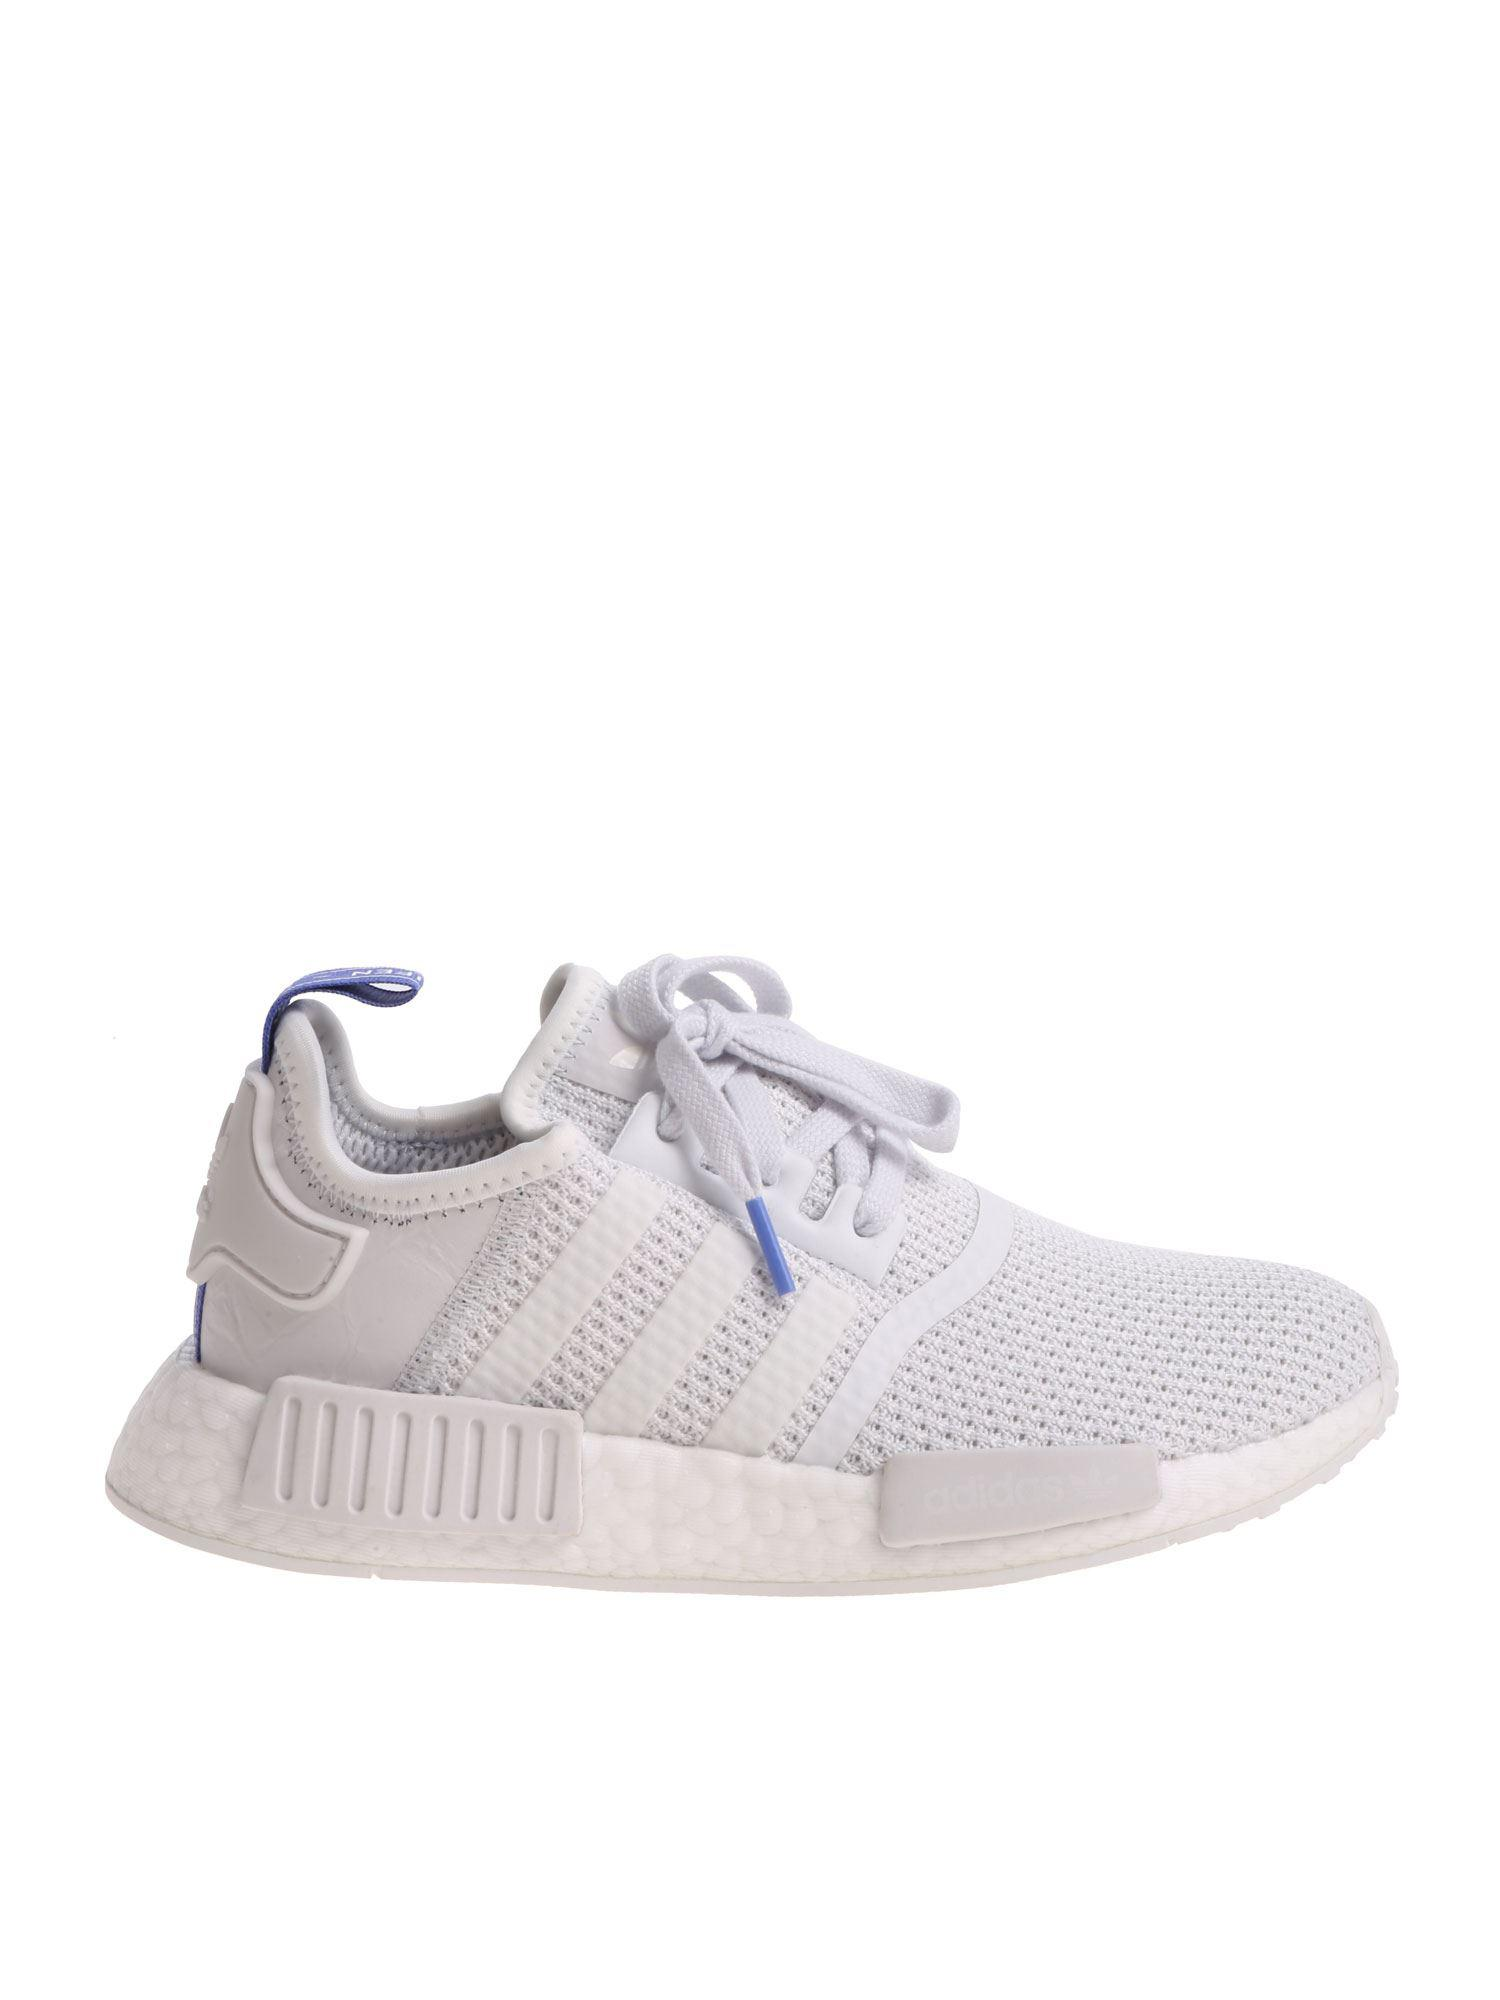 5e73516be Lyst - adidas Originals Nmd r1 W White Sneakers in White